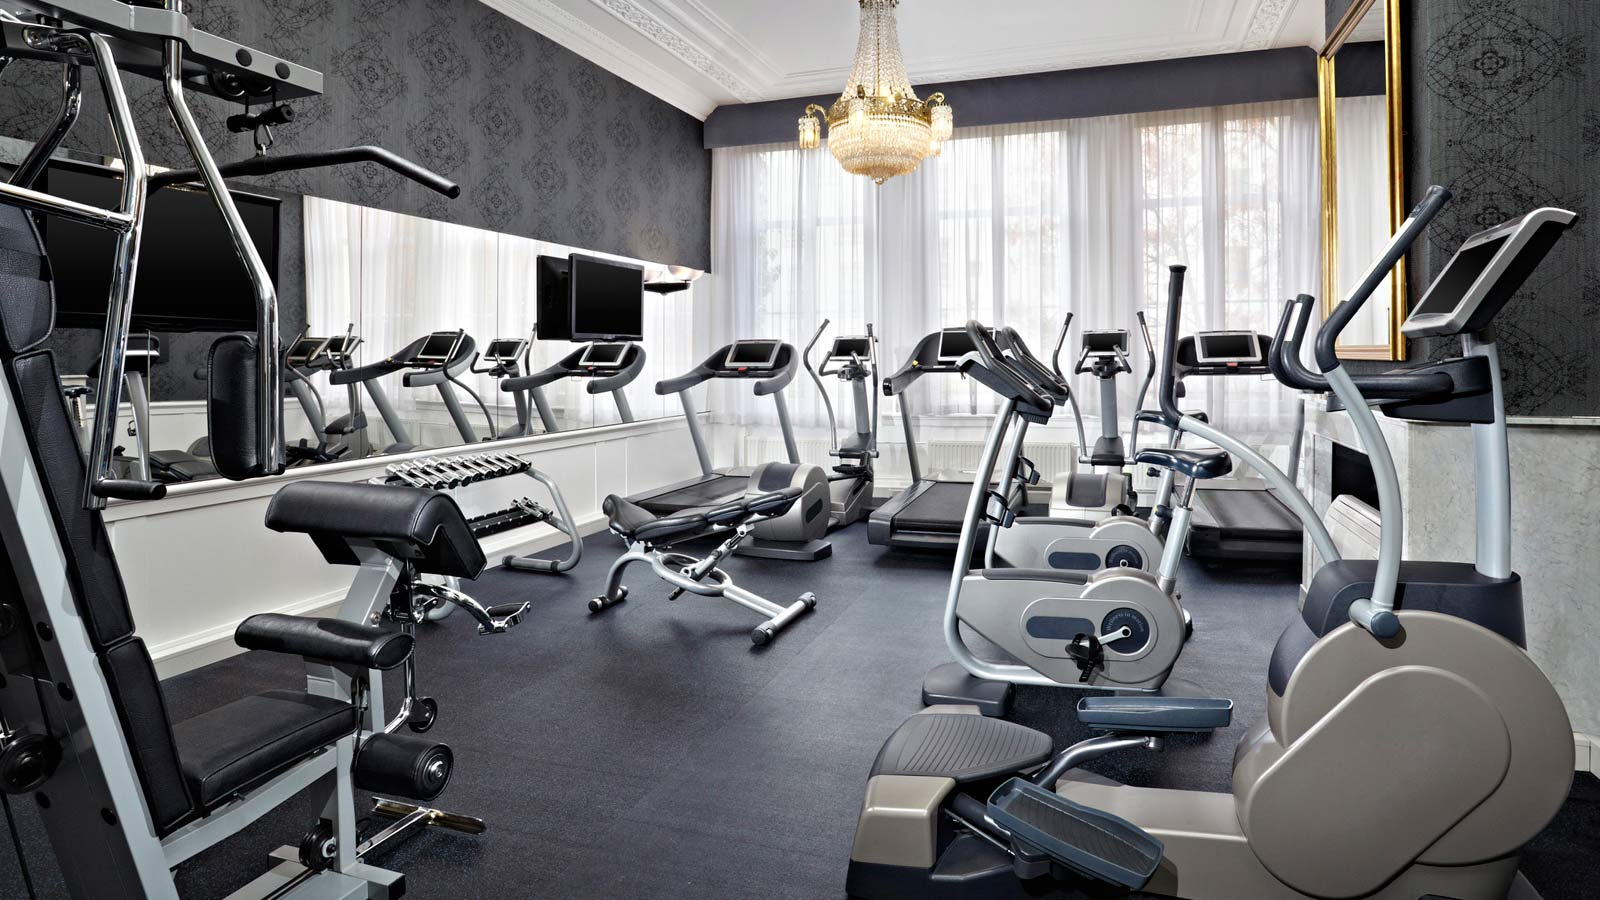 Hotel Fitness Rooms